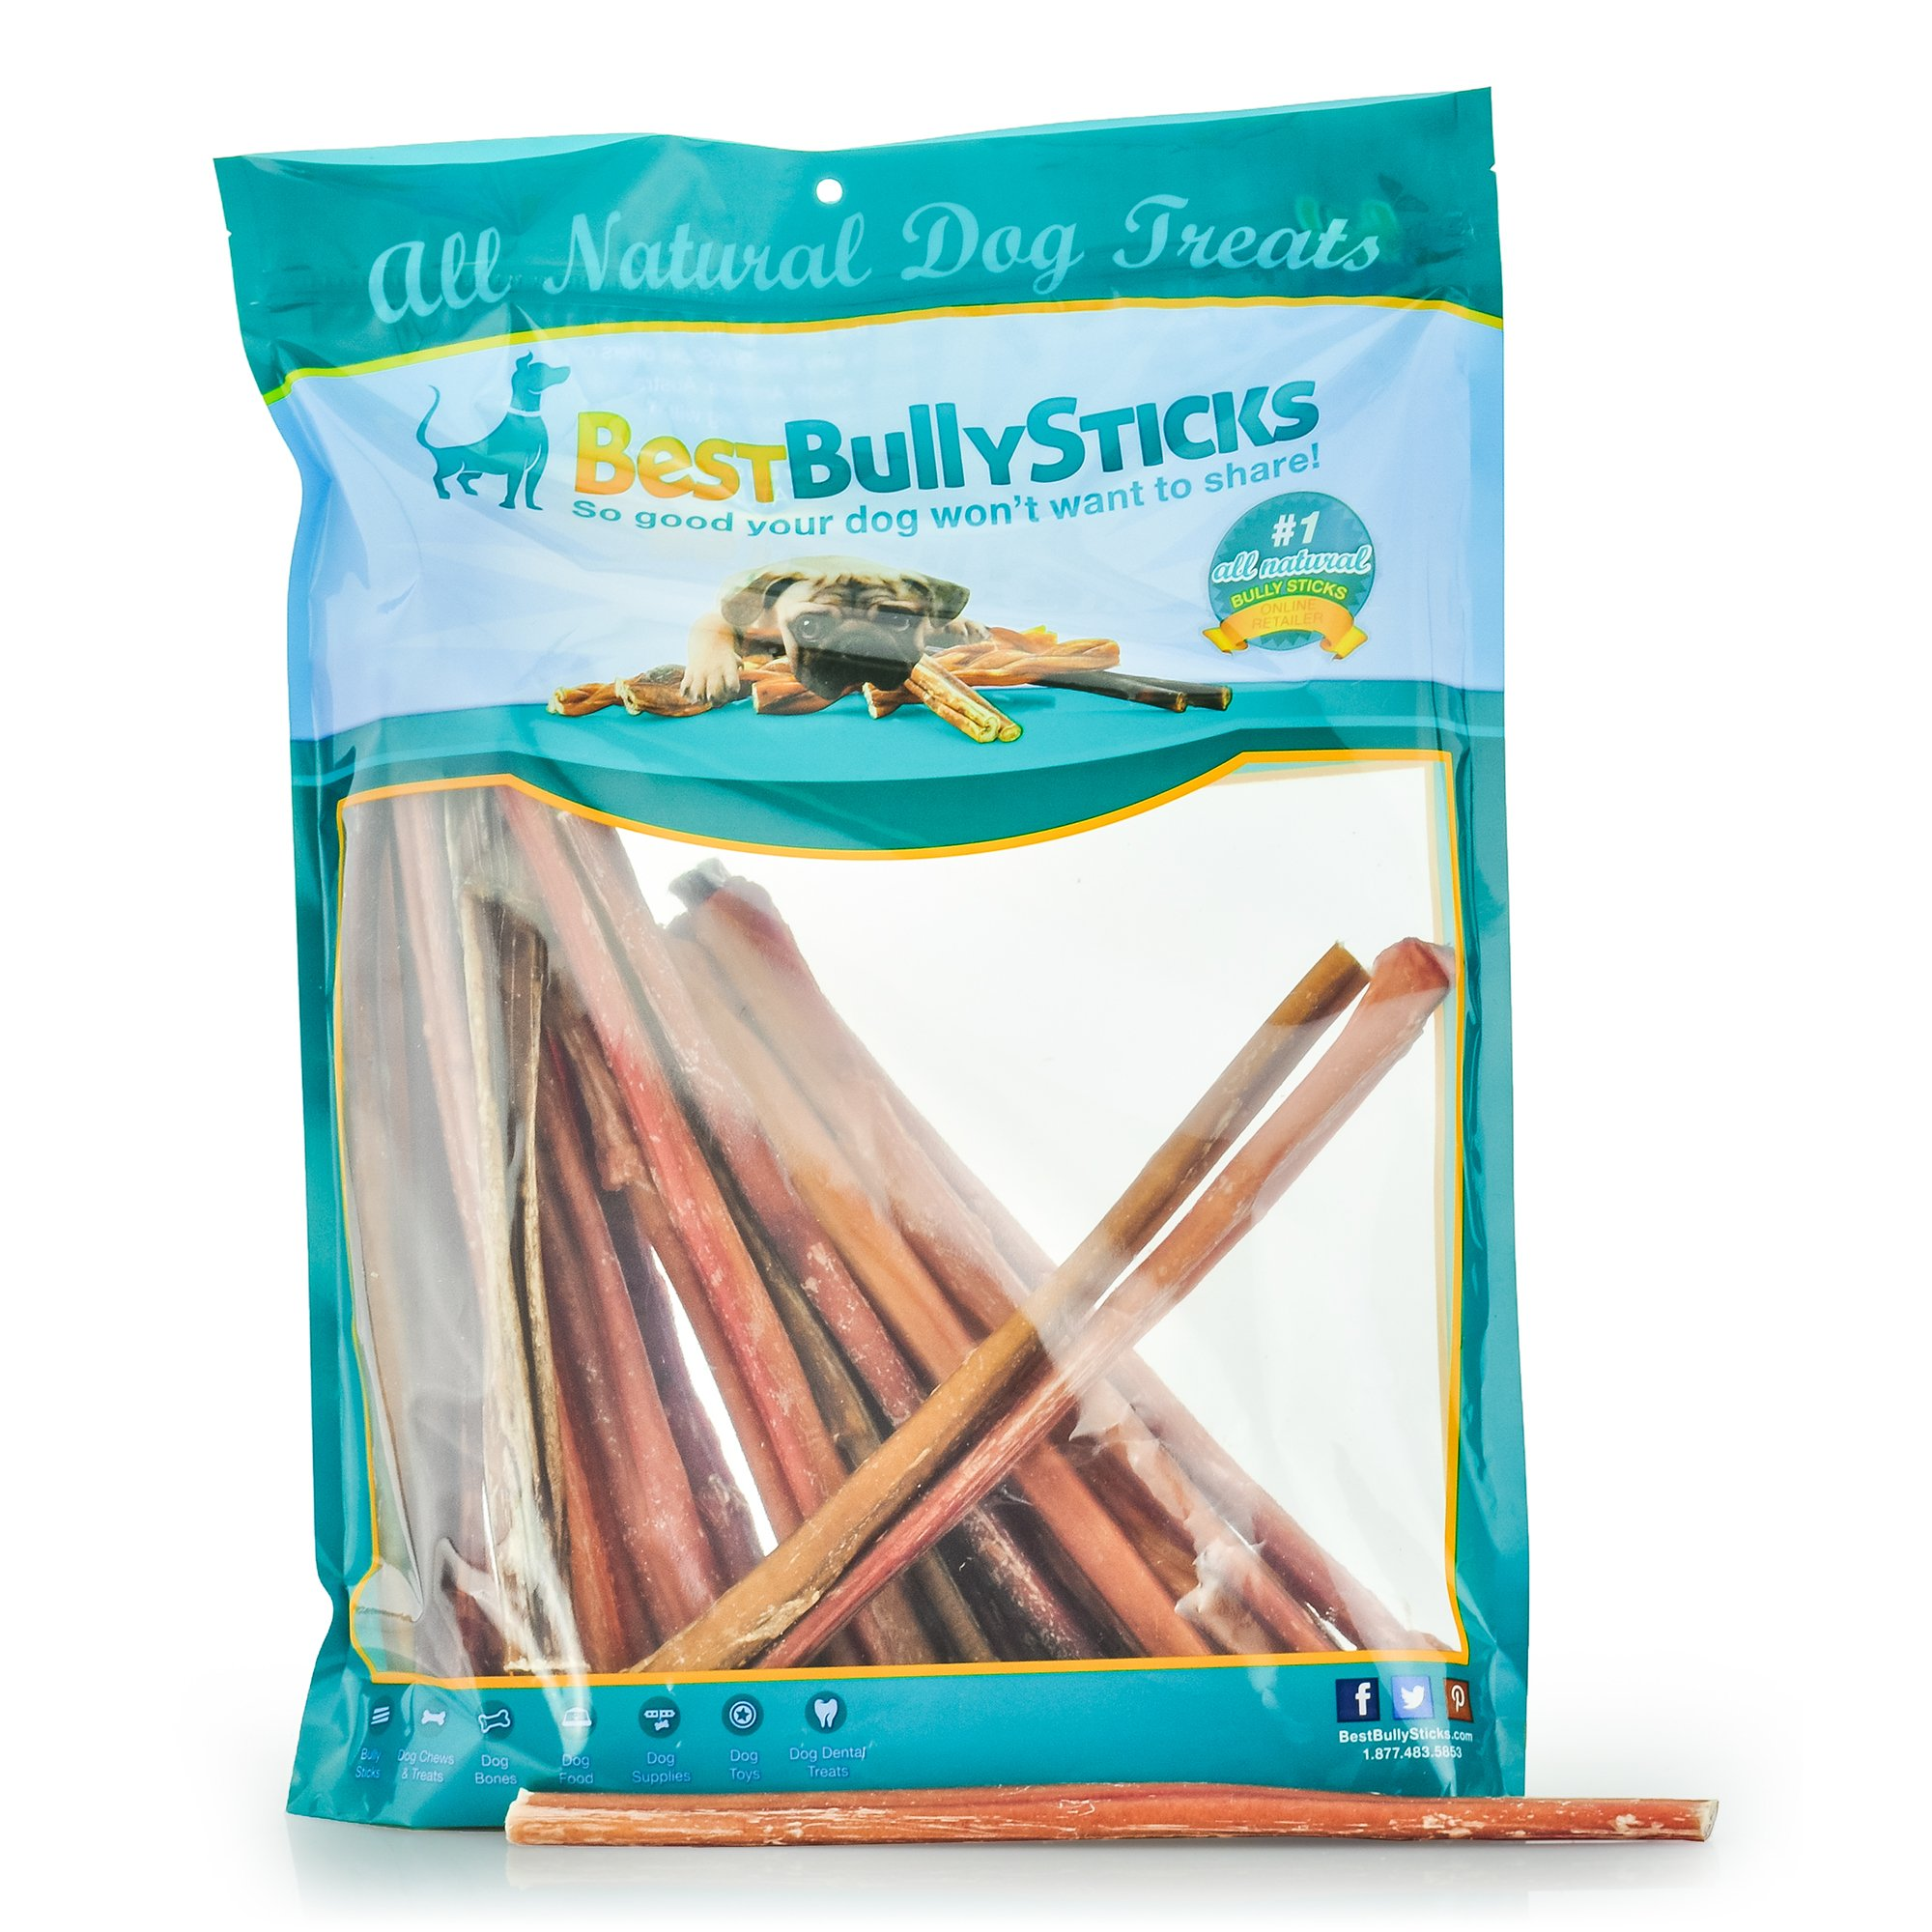 Odor-Free Angus Bully Sticks by Best Bully Sticks - All Natural